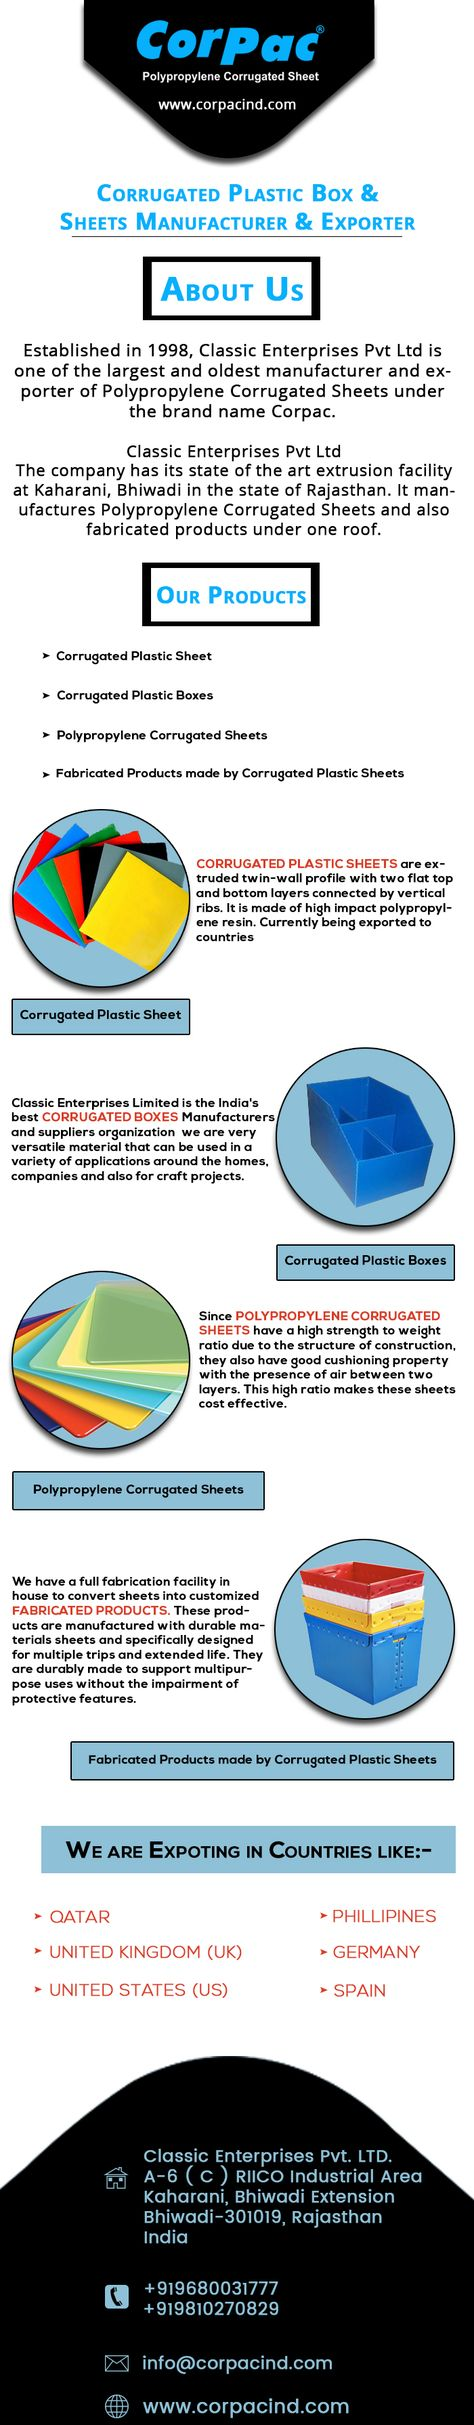 Classic Enterprises Pvt Ltd Is One Of The Largest And Oldest Manufacturer And Exporter Of Polypropylene Corrugated Sheets U Corrugated Plastic Corrugated Plastic Sheets Plastic Sheets